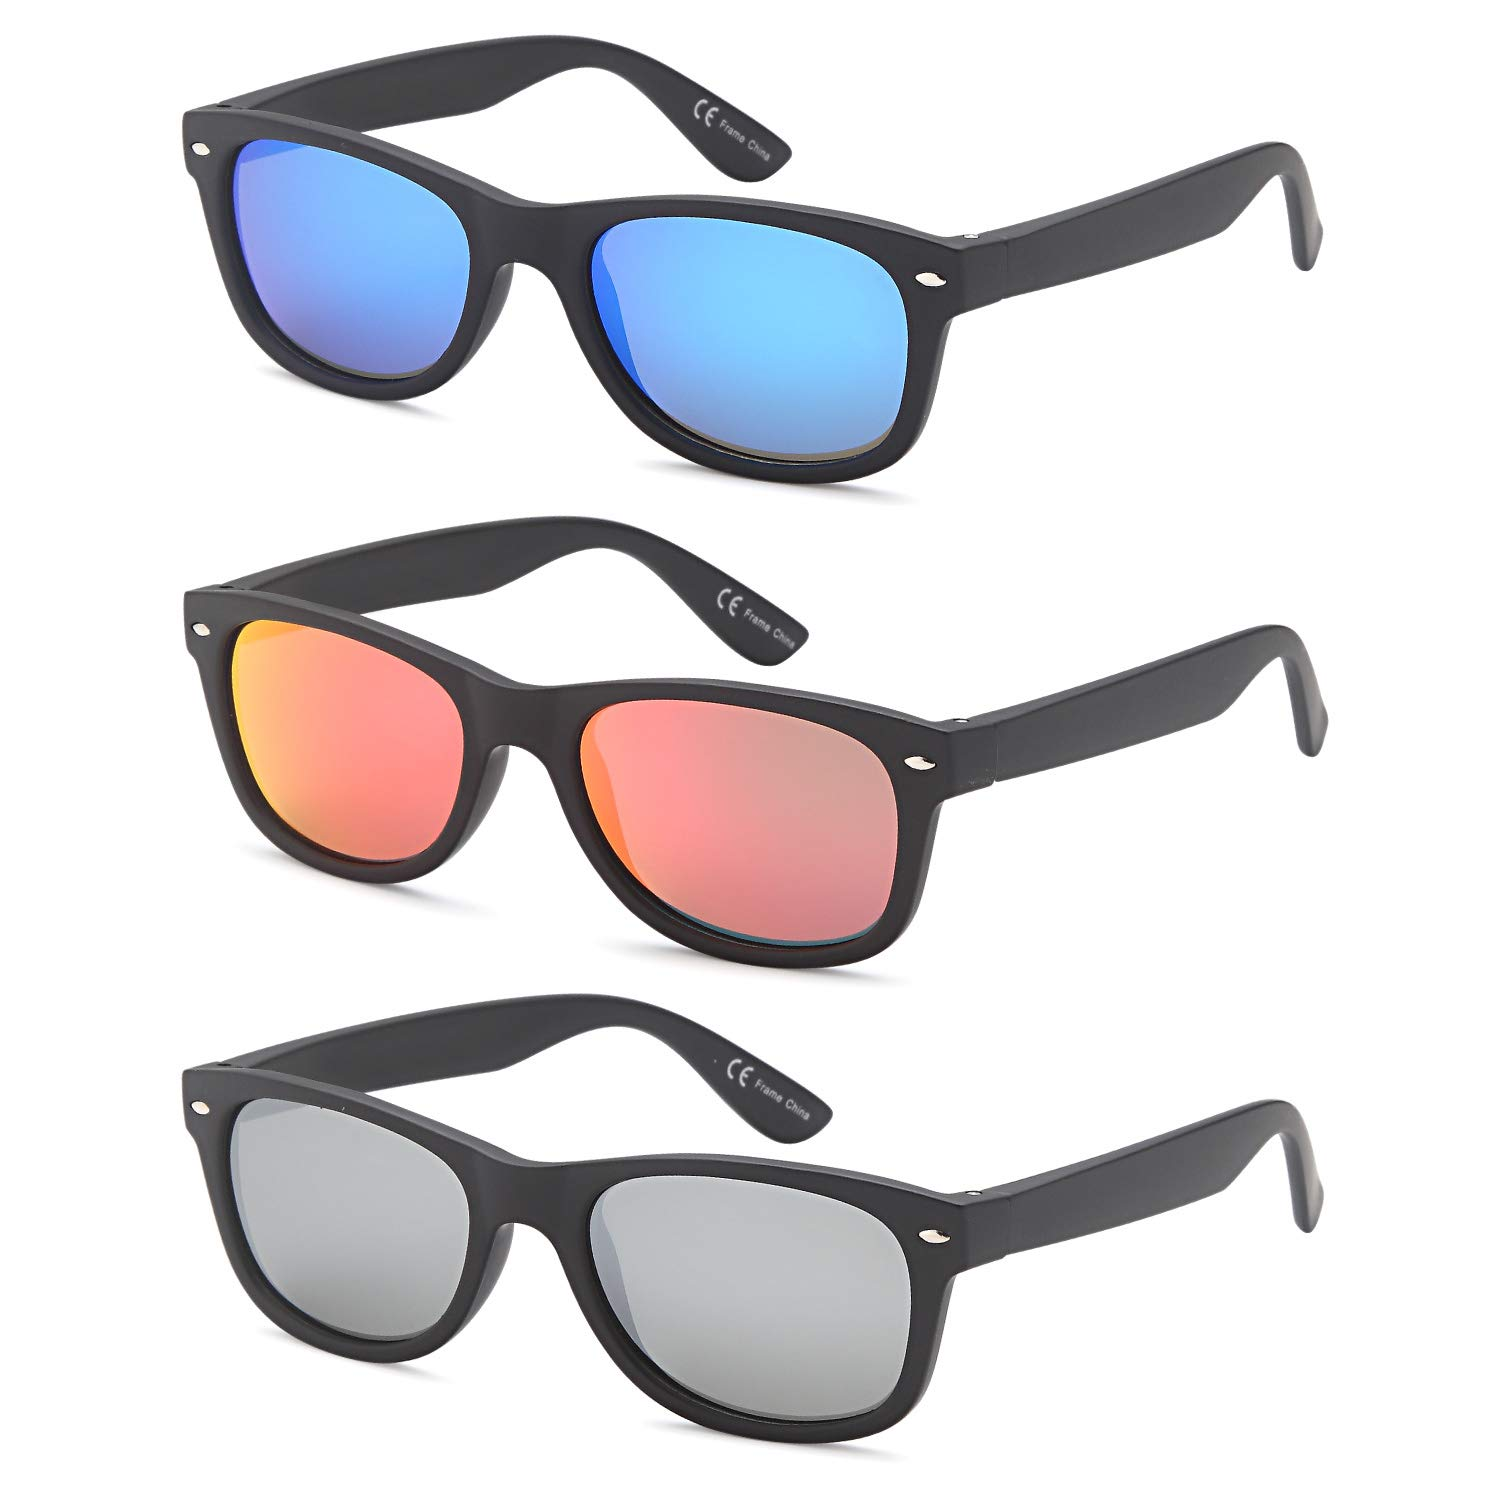 Polarized Sunglasses Men and Women 3 Pack (3 Pairs - 55, Black, Size Checkmate by GAMMA RAY OPTICS